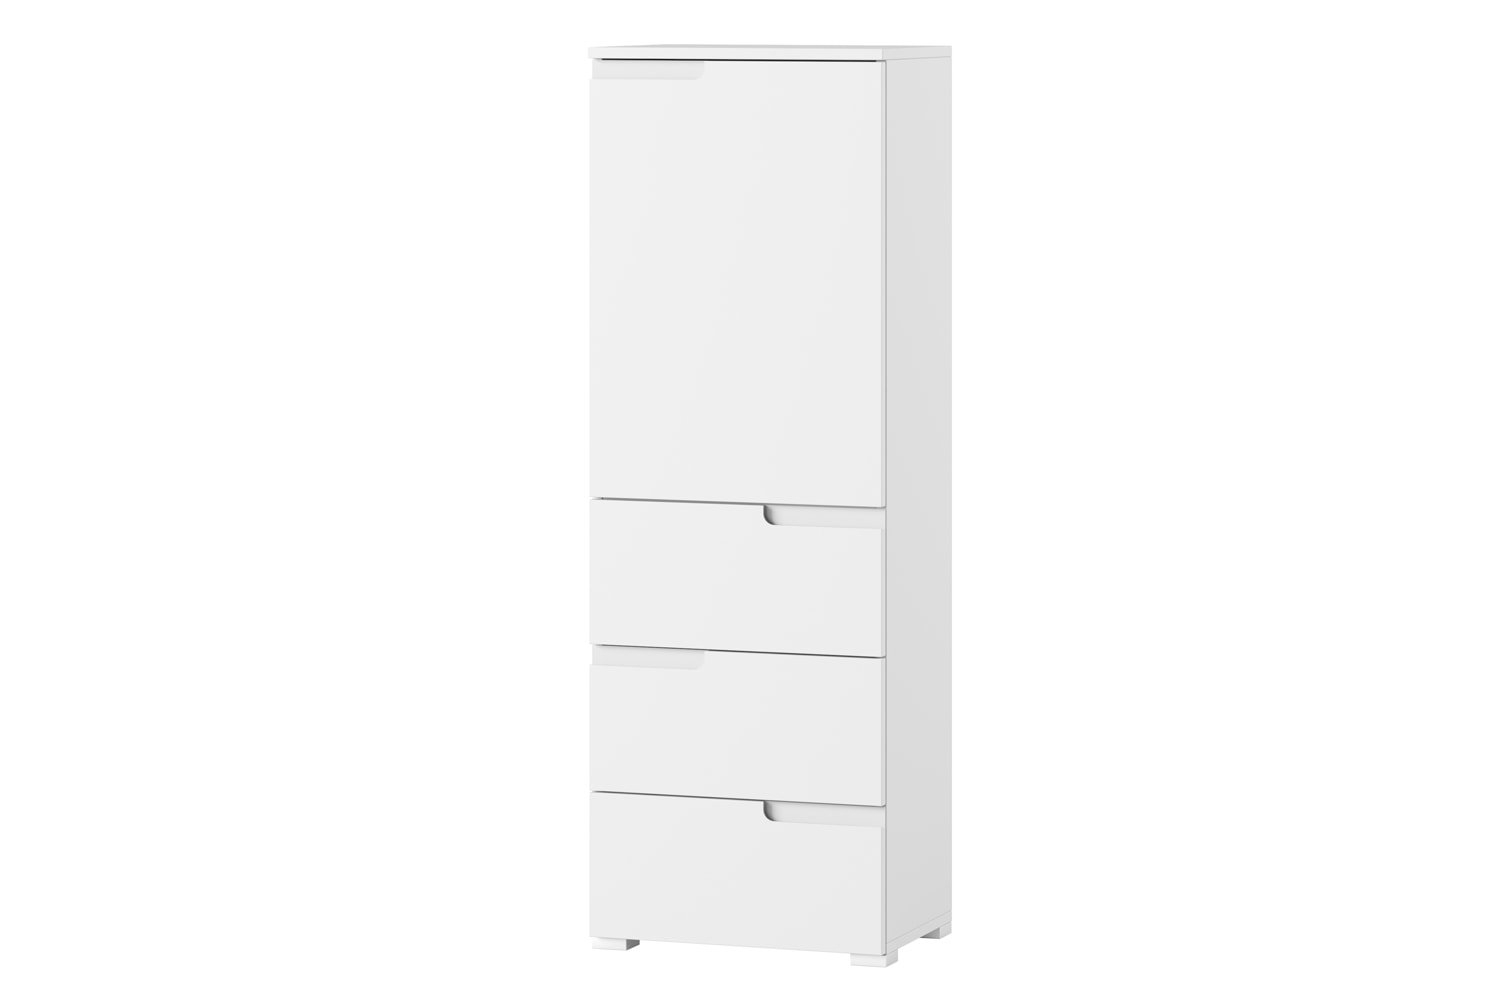 Cabinet din pal si MDF, cu 1 usa si 3 sertare Small Gabrielle 11 Alb, l50xA35xH145 cm somproduct.ro